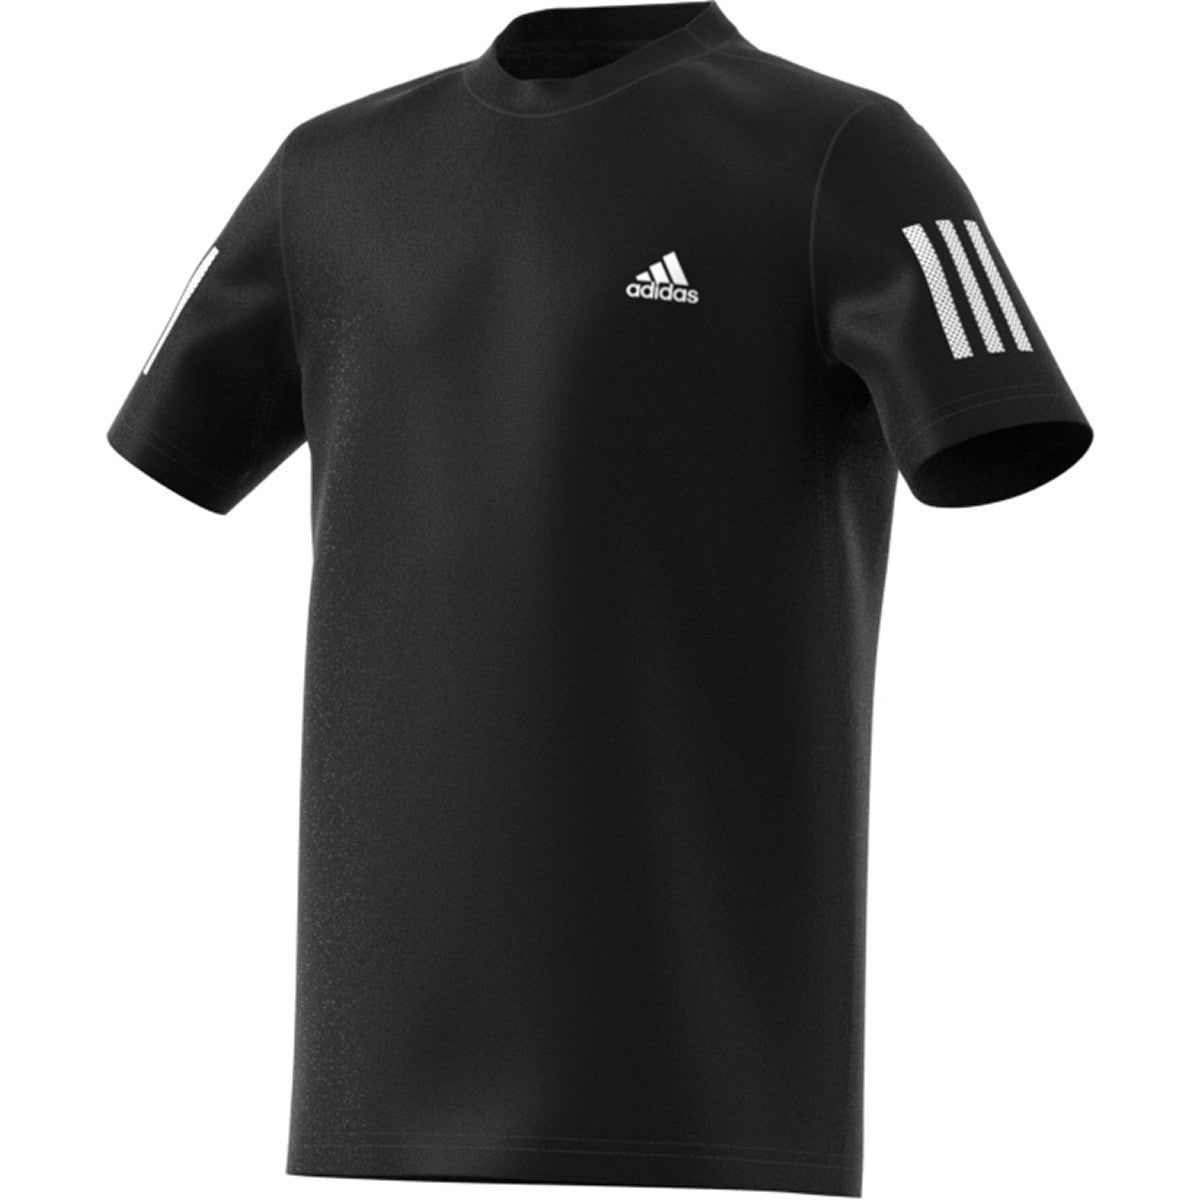 Adidas Fall Club 3STR Tee    Black/White